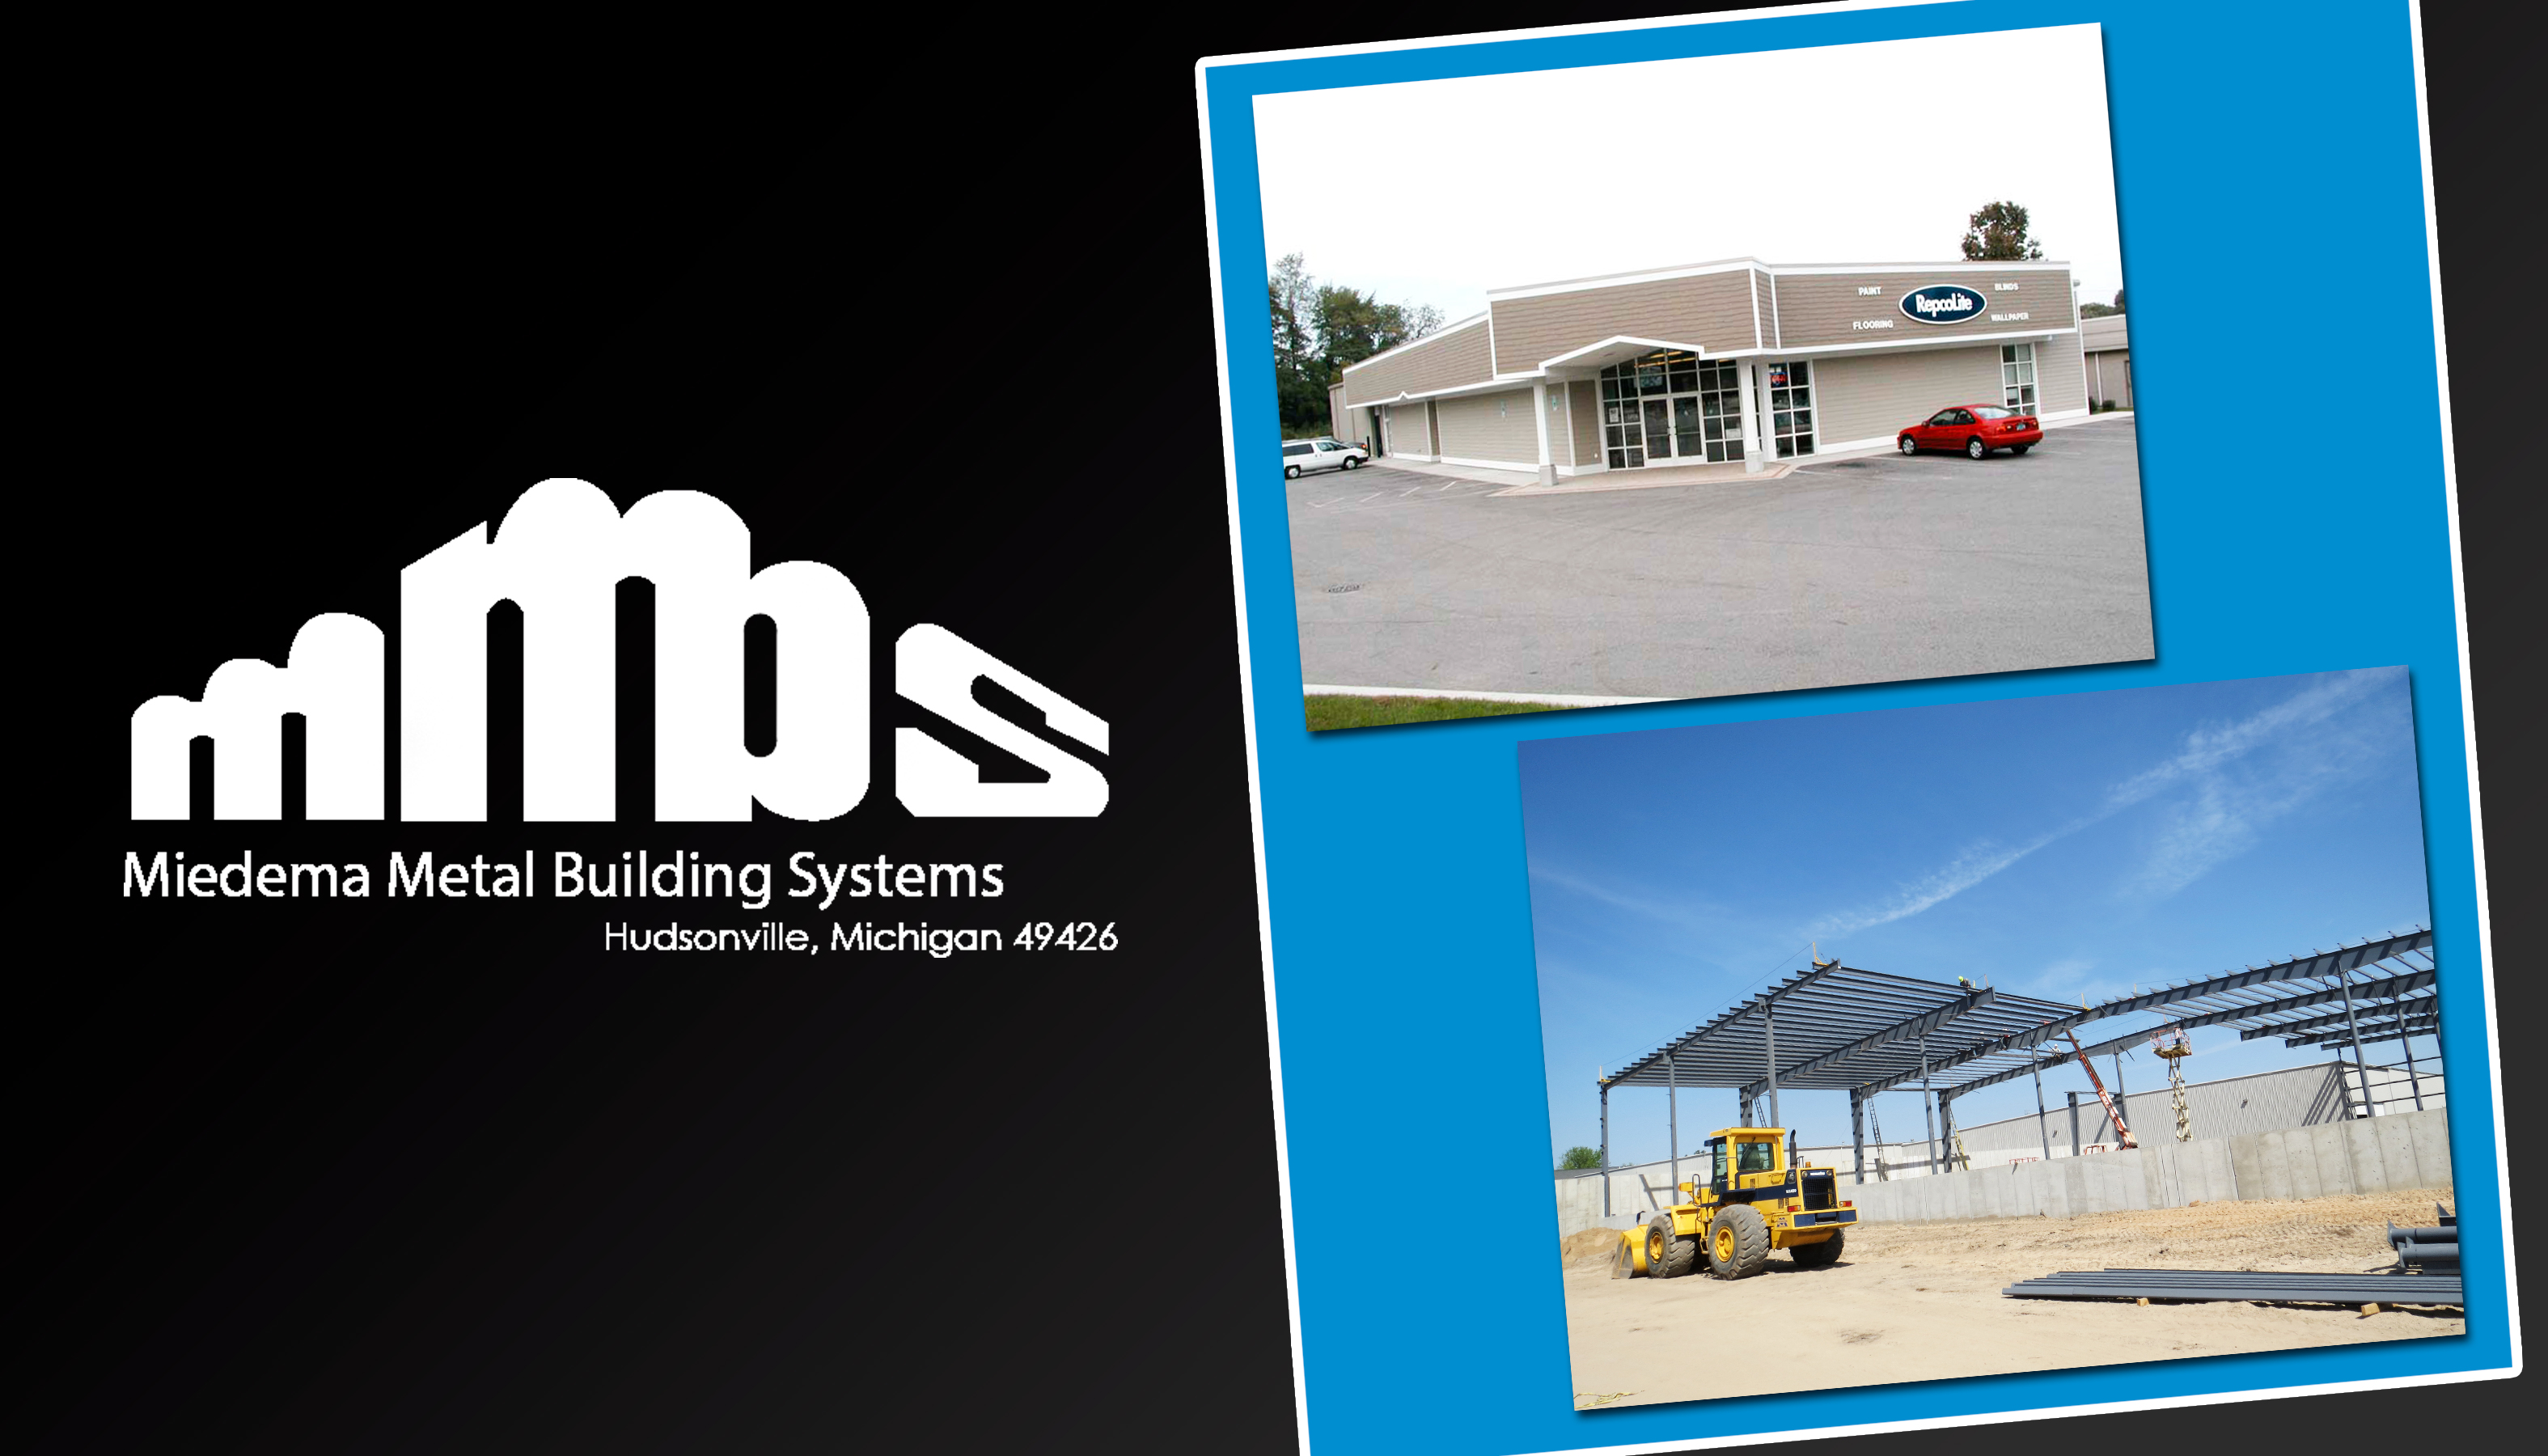 Miedema Metal Building Systems, Inc. image 0